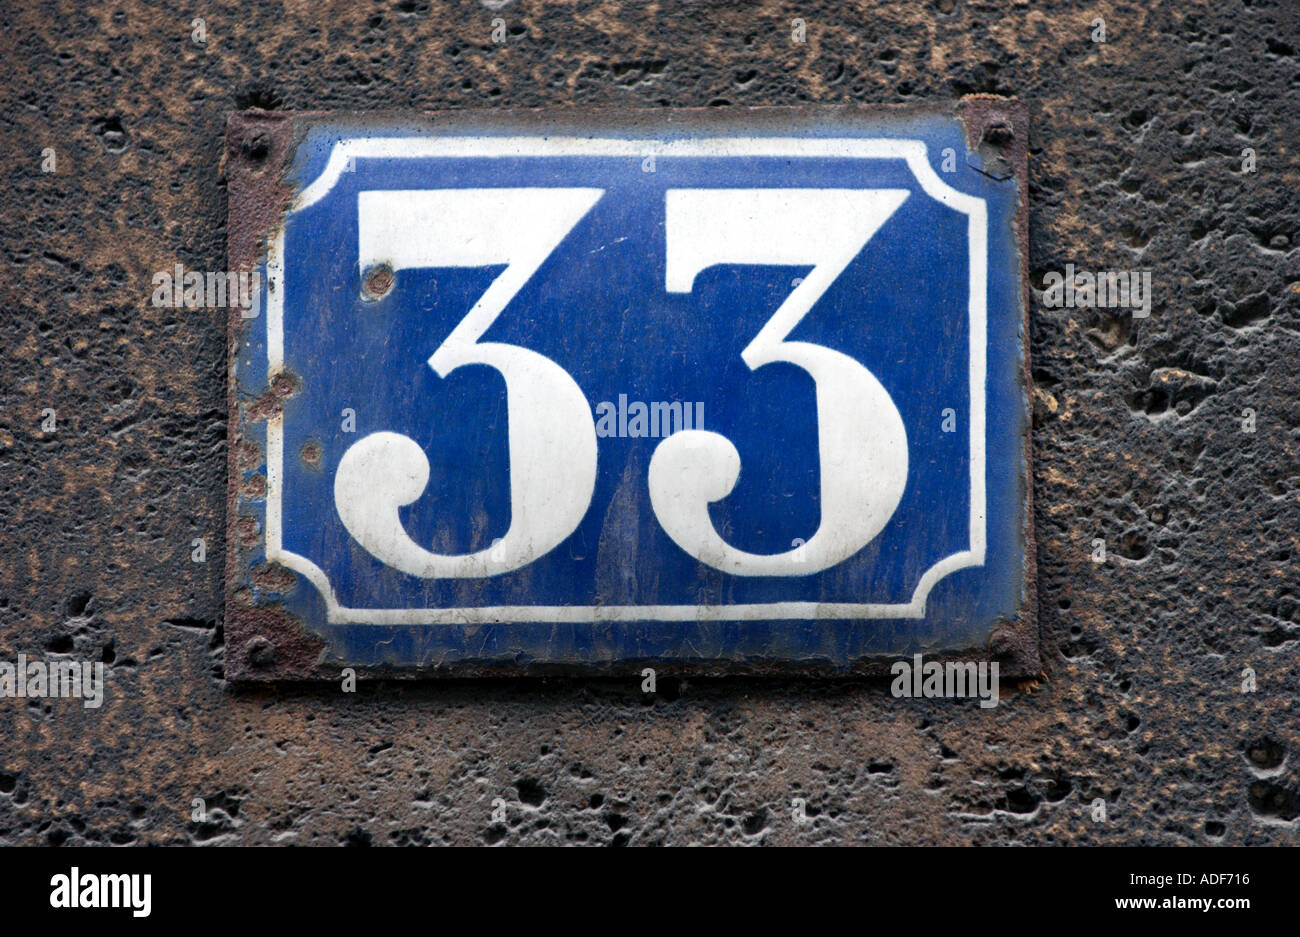 Old fashioned house numbers